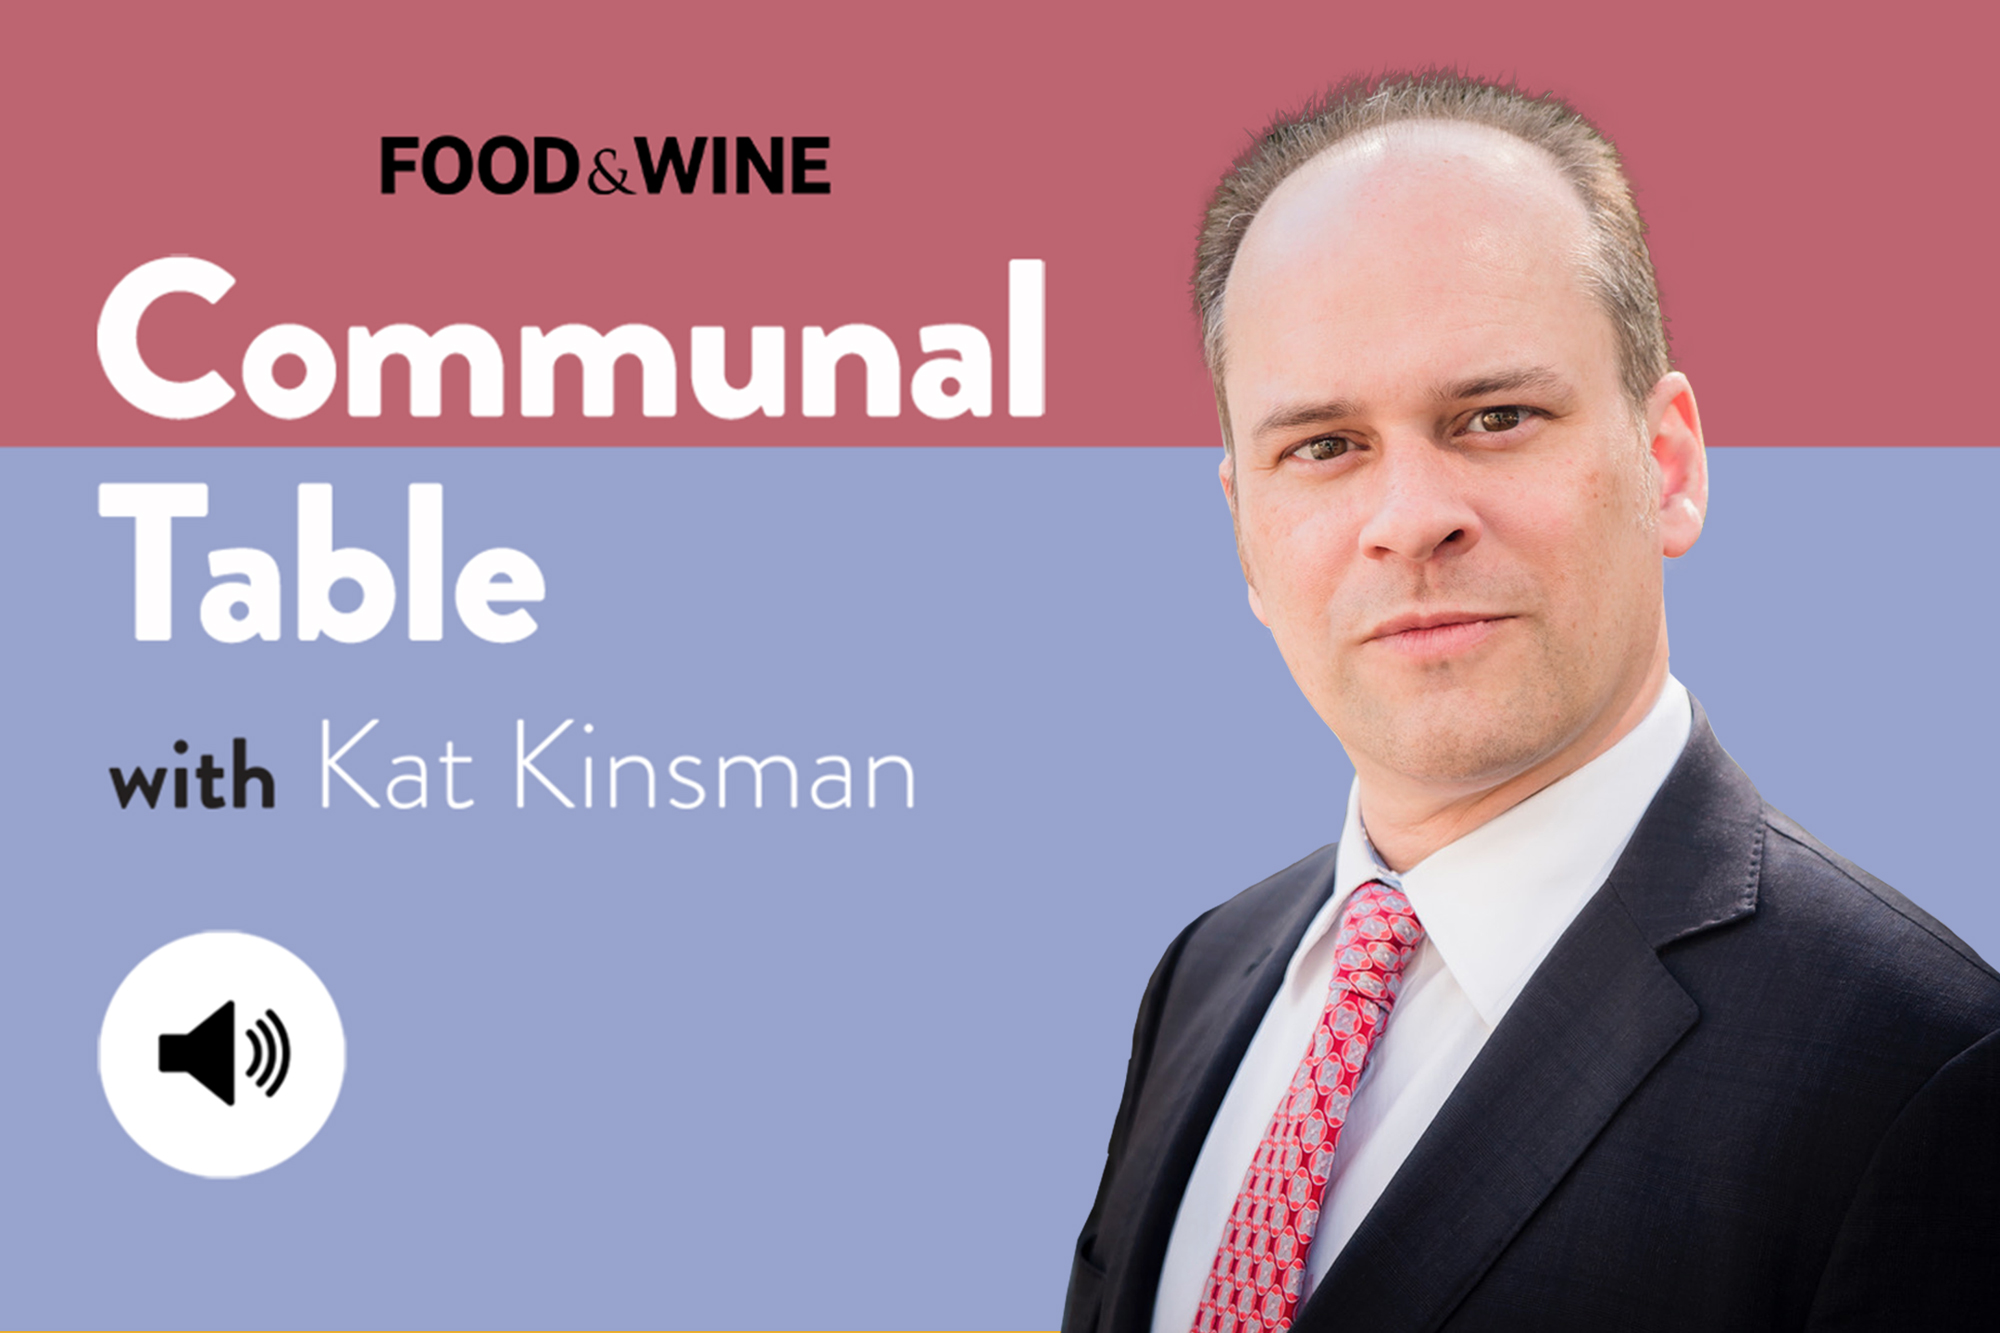 Communal Table with Kat Kinsman featuring Douglas Wagner